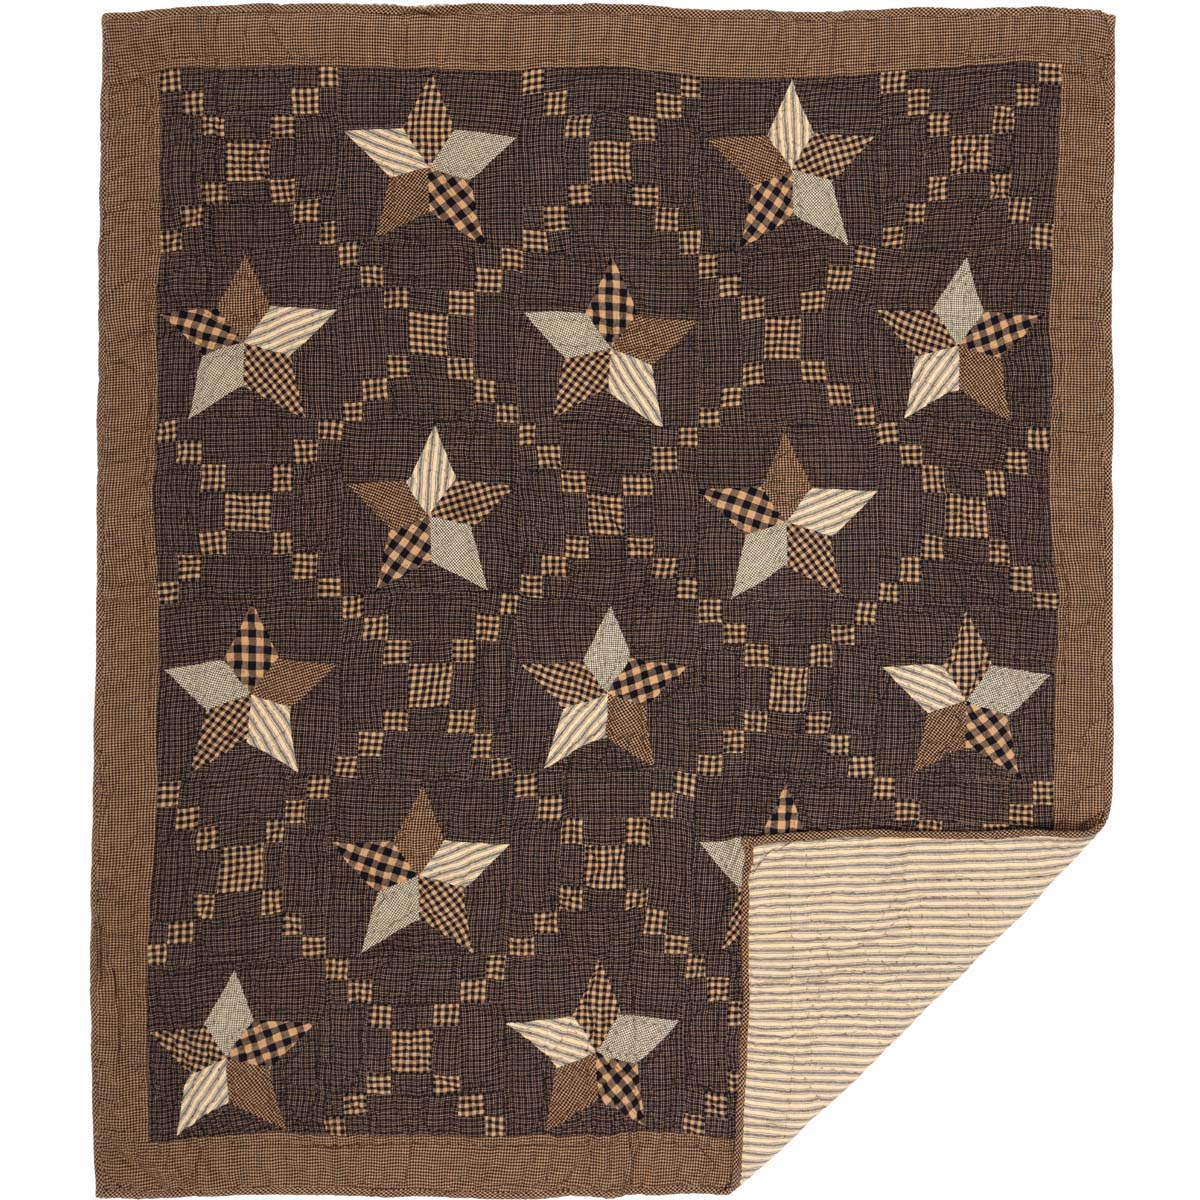 Farmhouse Star Quilted Throw 60x50